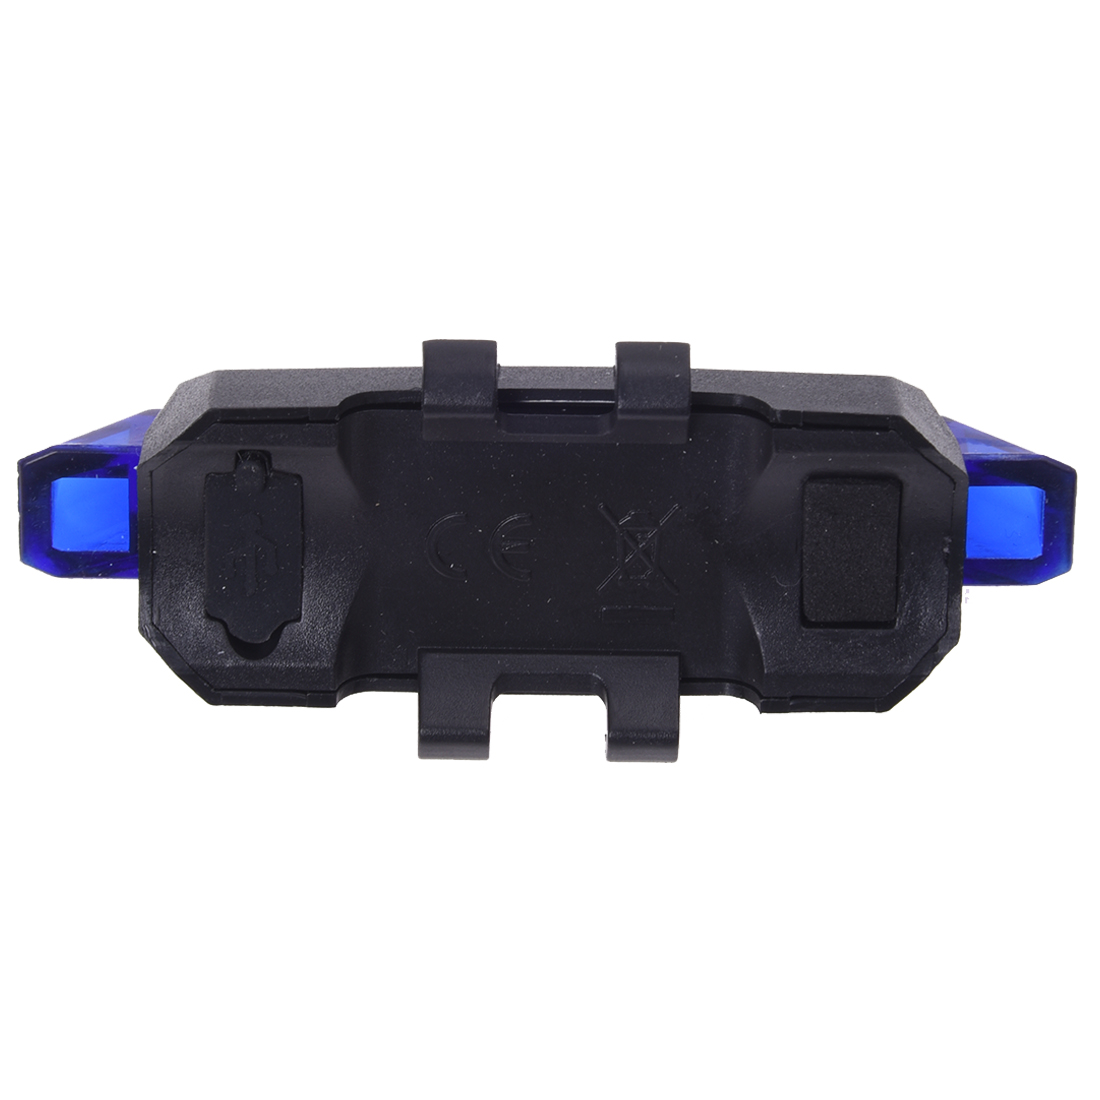 5LED Bicycle Rear Tail Lights Flash USB Rechargeable Bike Safety Lamp Waterproof, Black+Blue